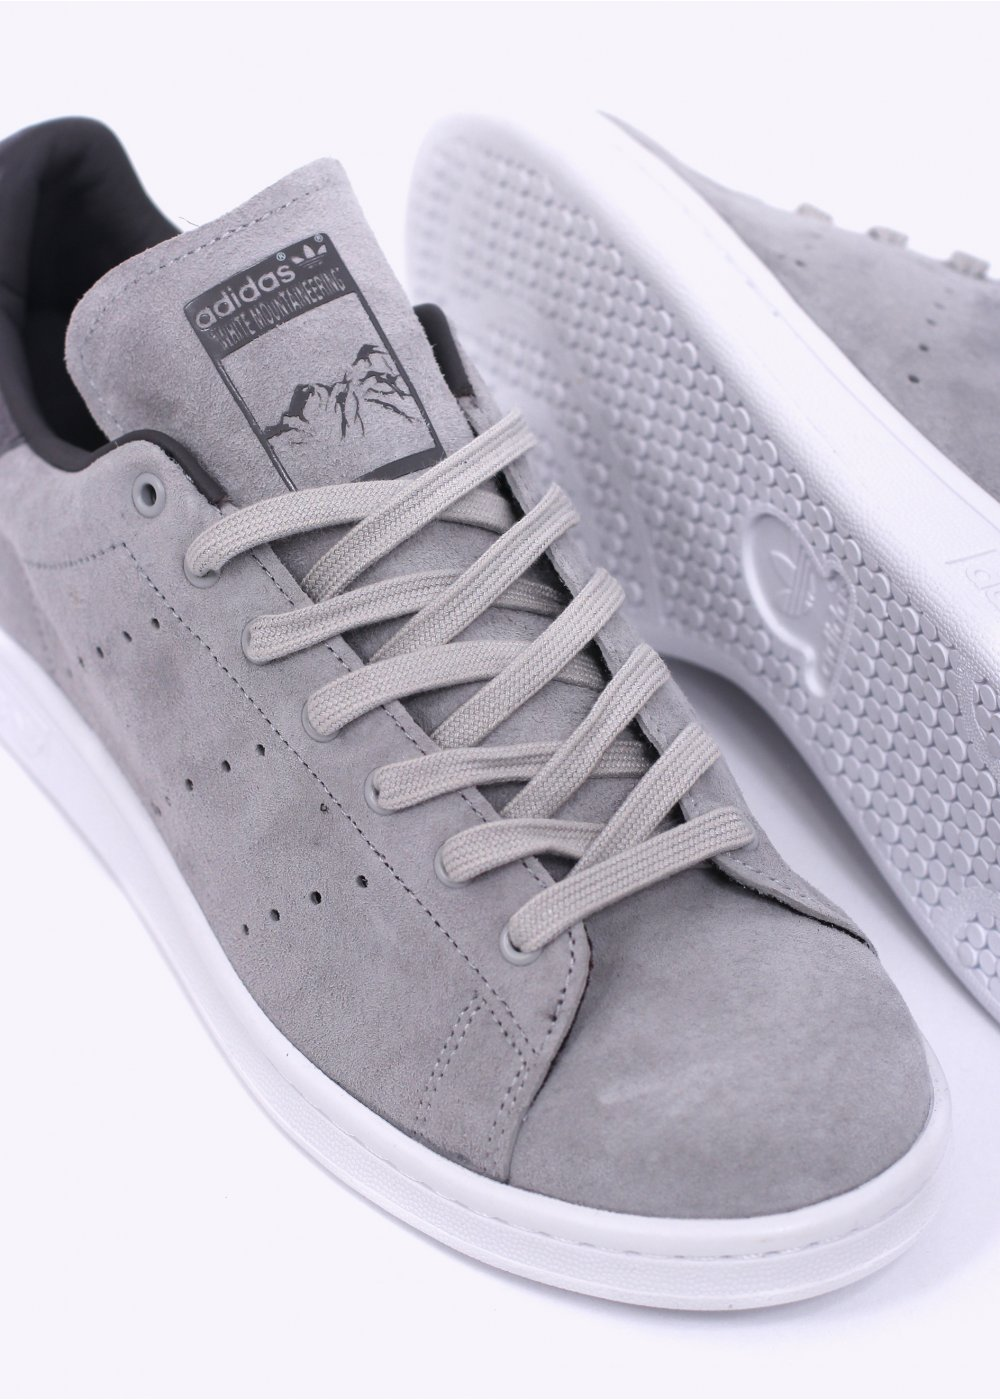 adidas Originals x White Mountaineering Stan Smith Trainers - Onix ... db1d65c17